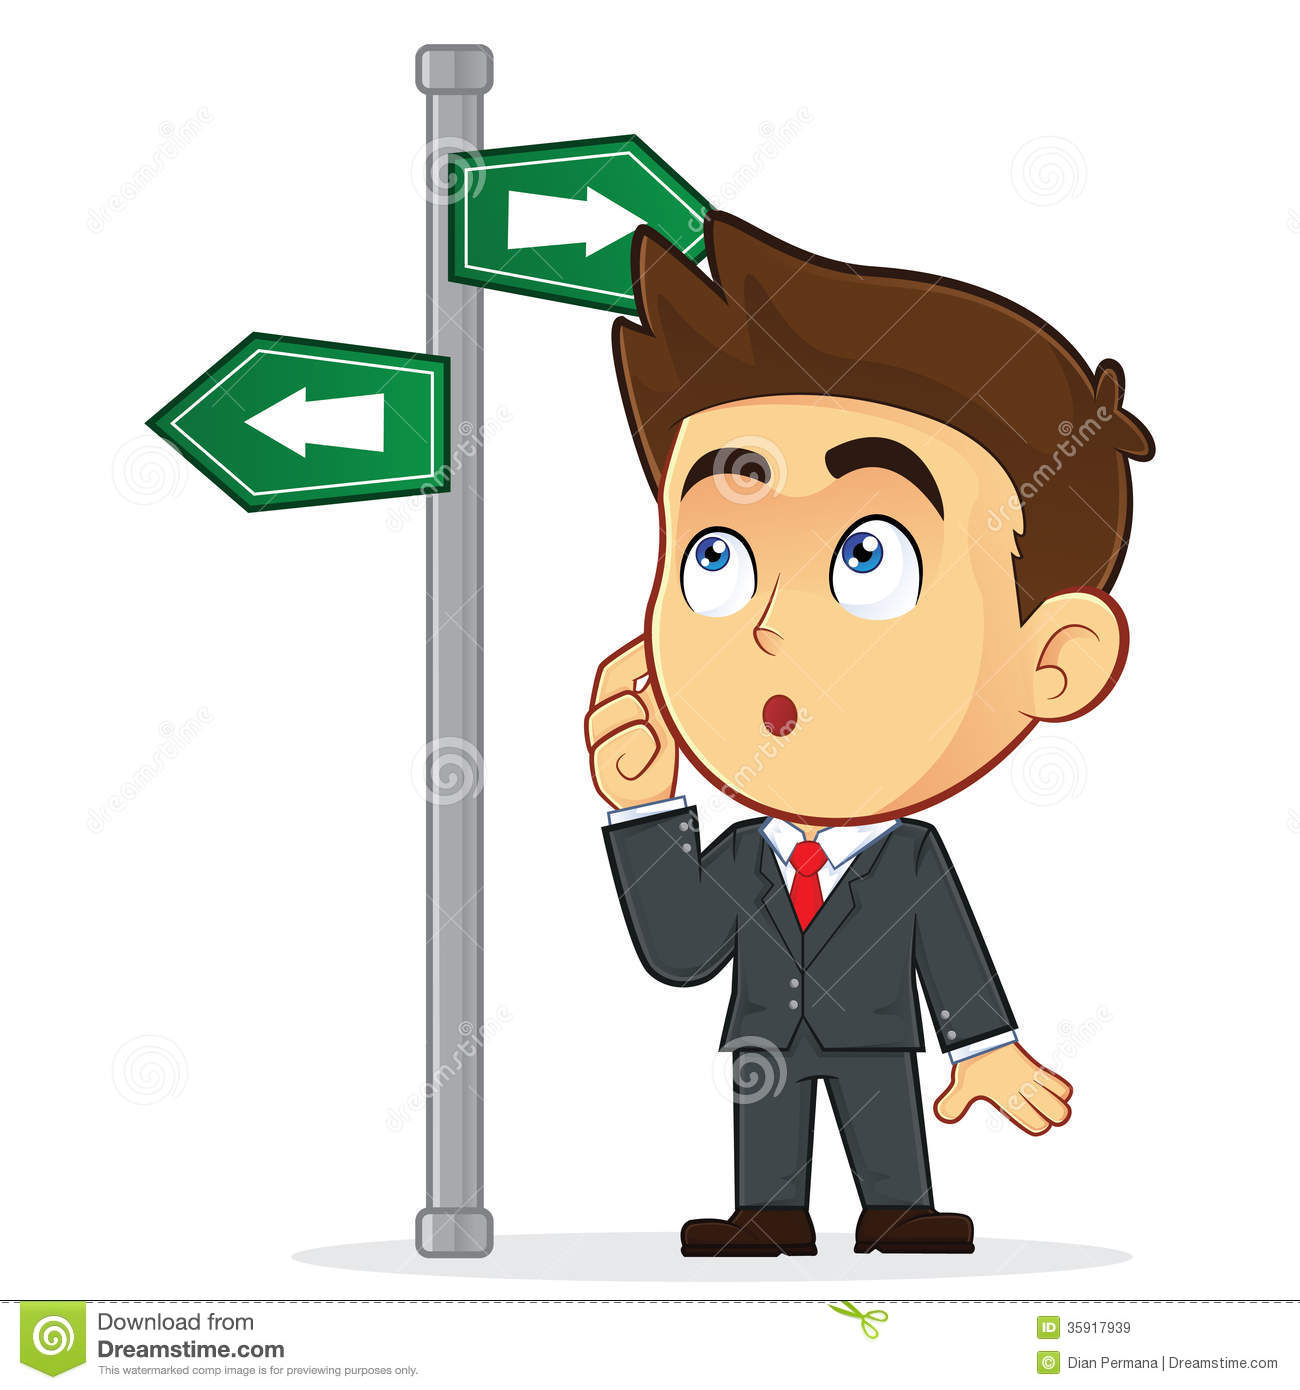 Businessman Looking at a Sign That Points in Many